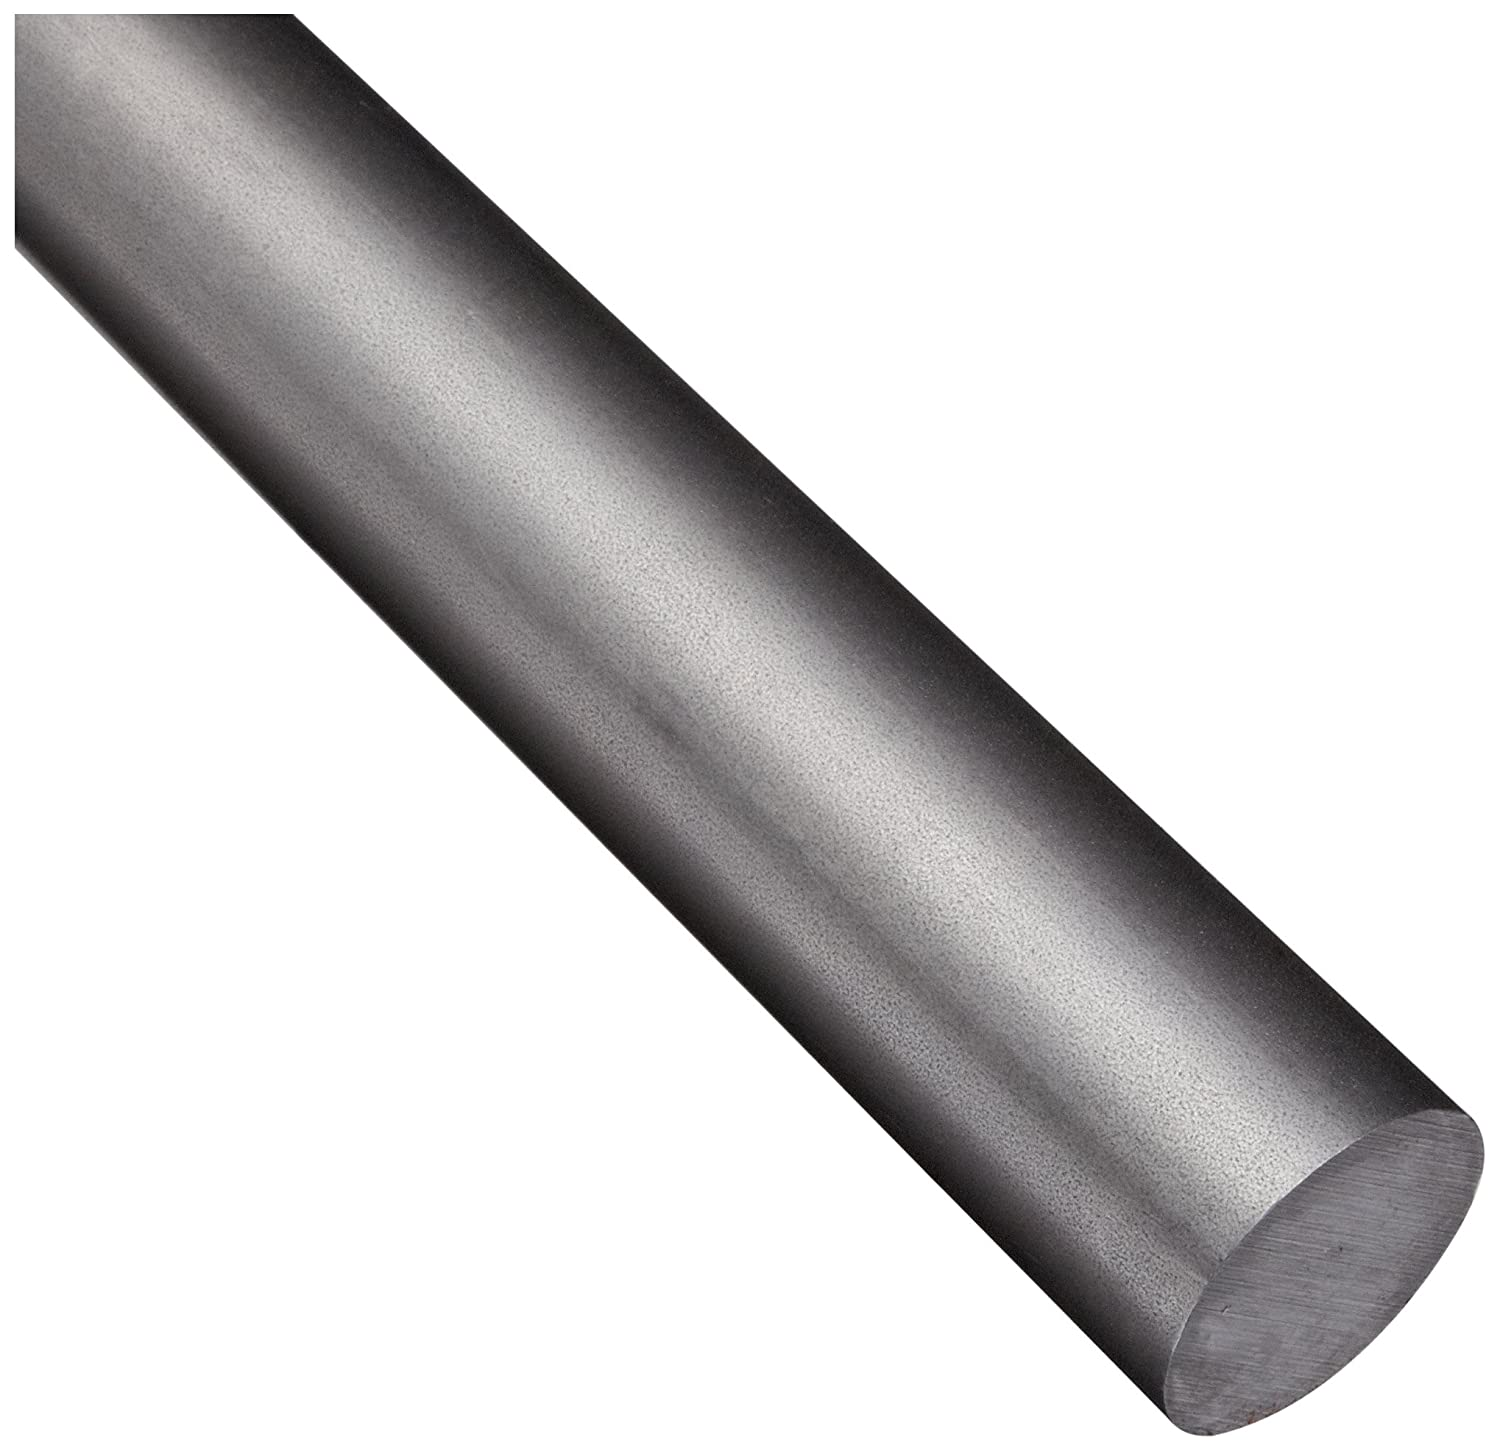 Unpolished 12 Length 1018 Carbon Steel Round Rod Cold Finished Temper ASTM A108 Finish Mill 0.375 Diameter